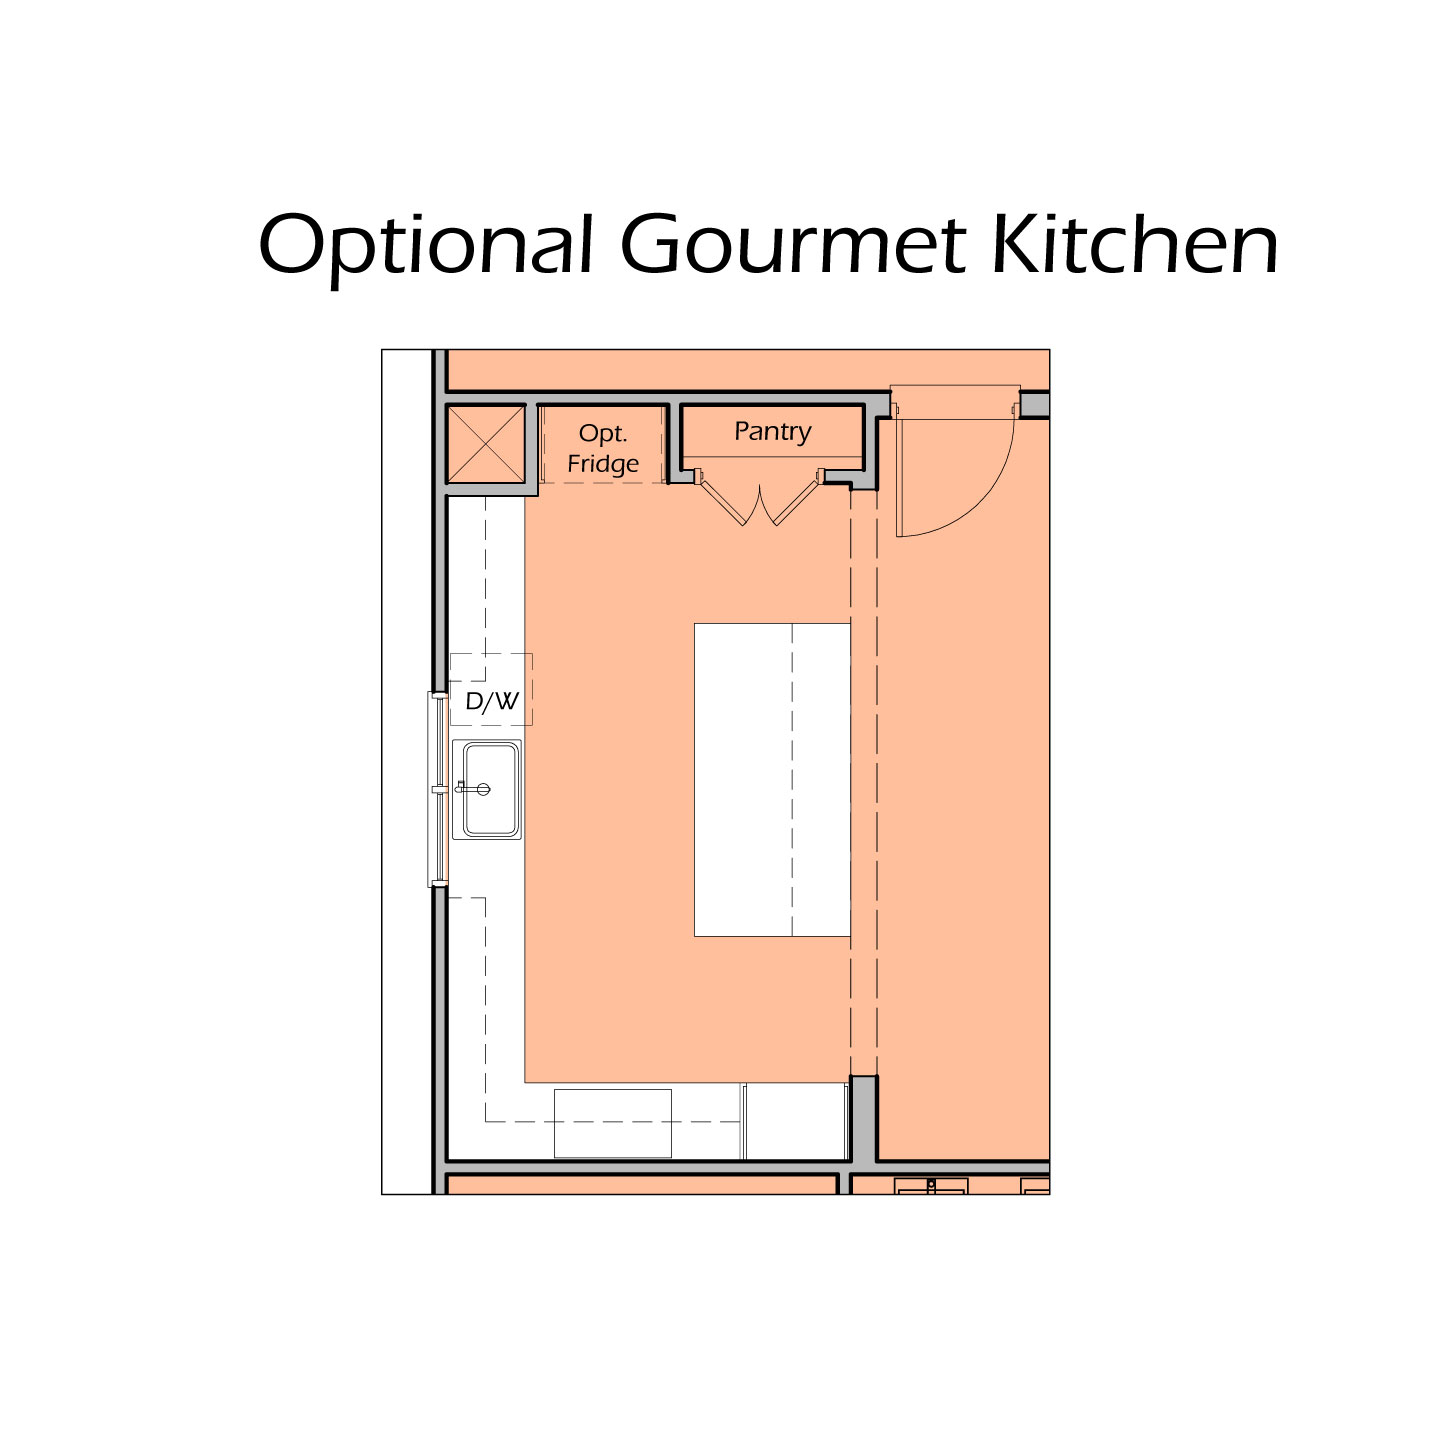 Heartland Plan A2 - Gourmet Kitchen Option